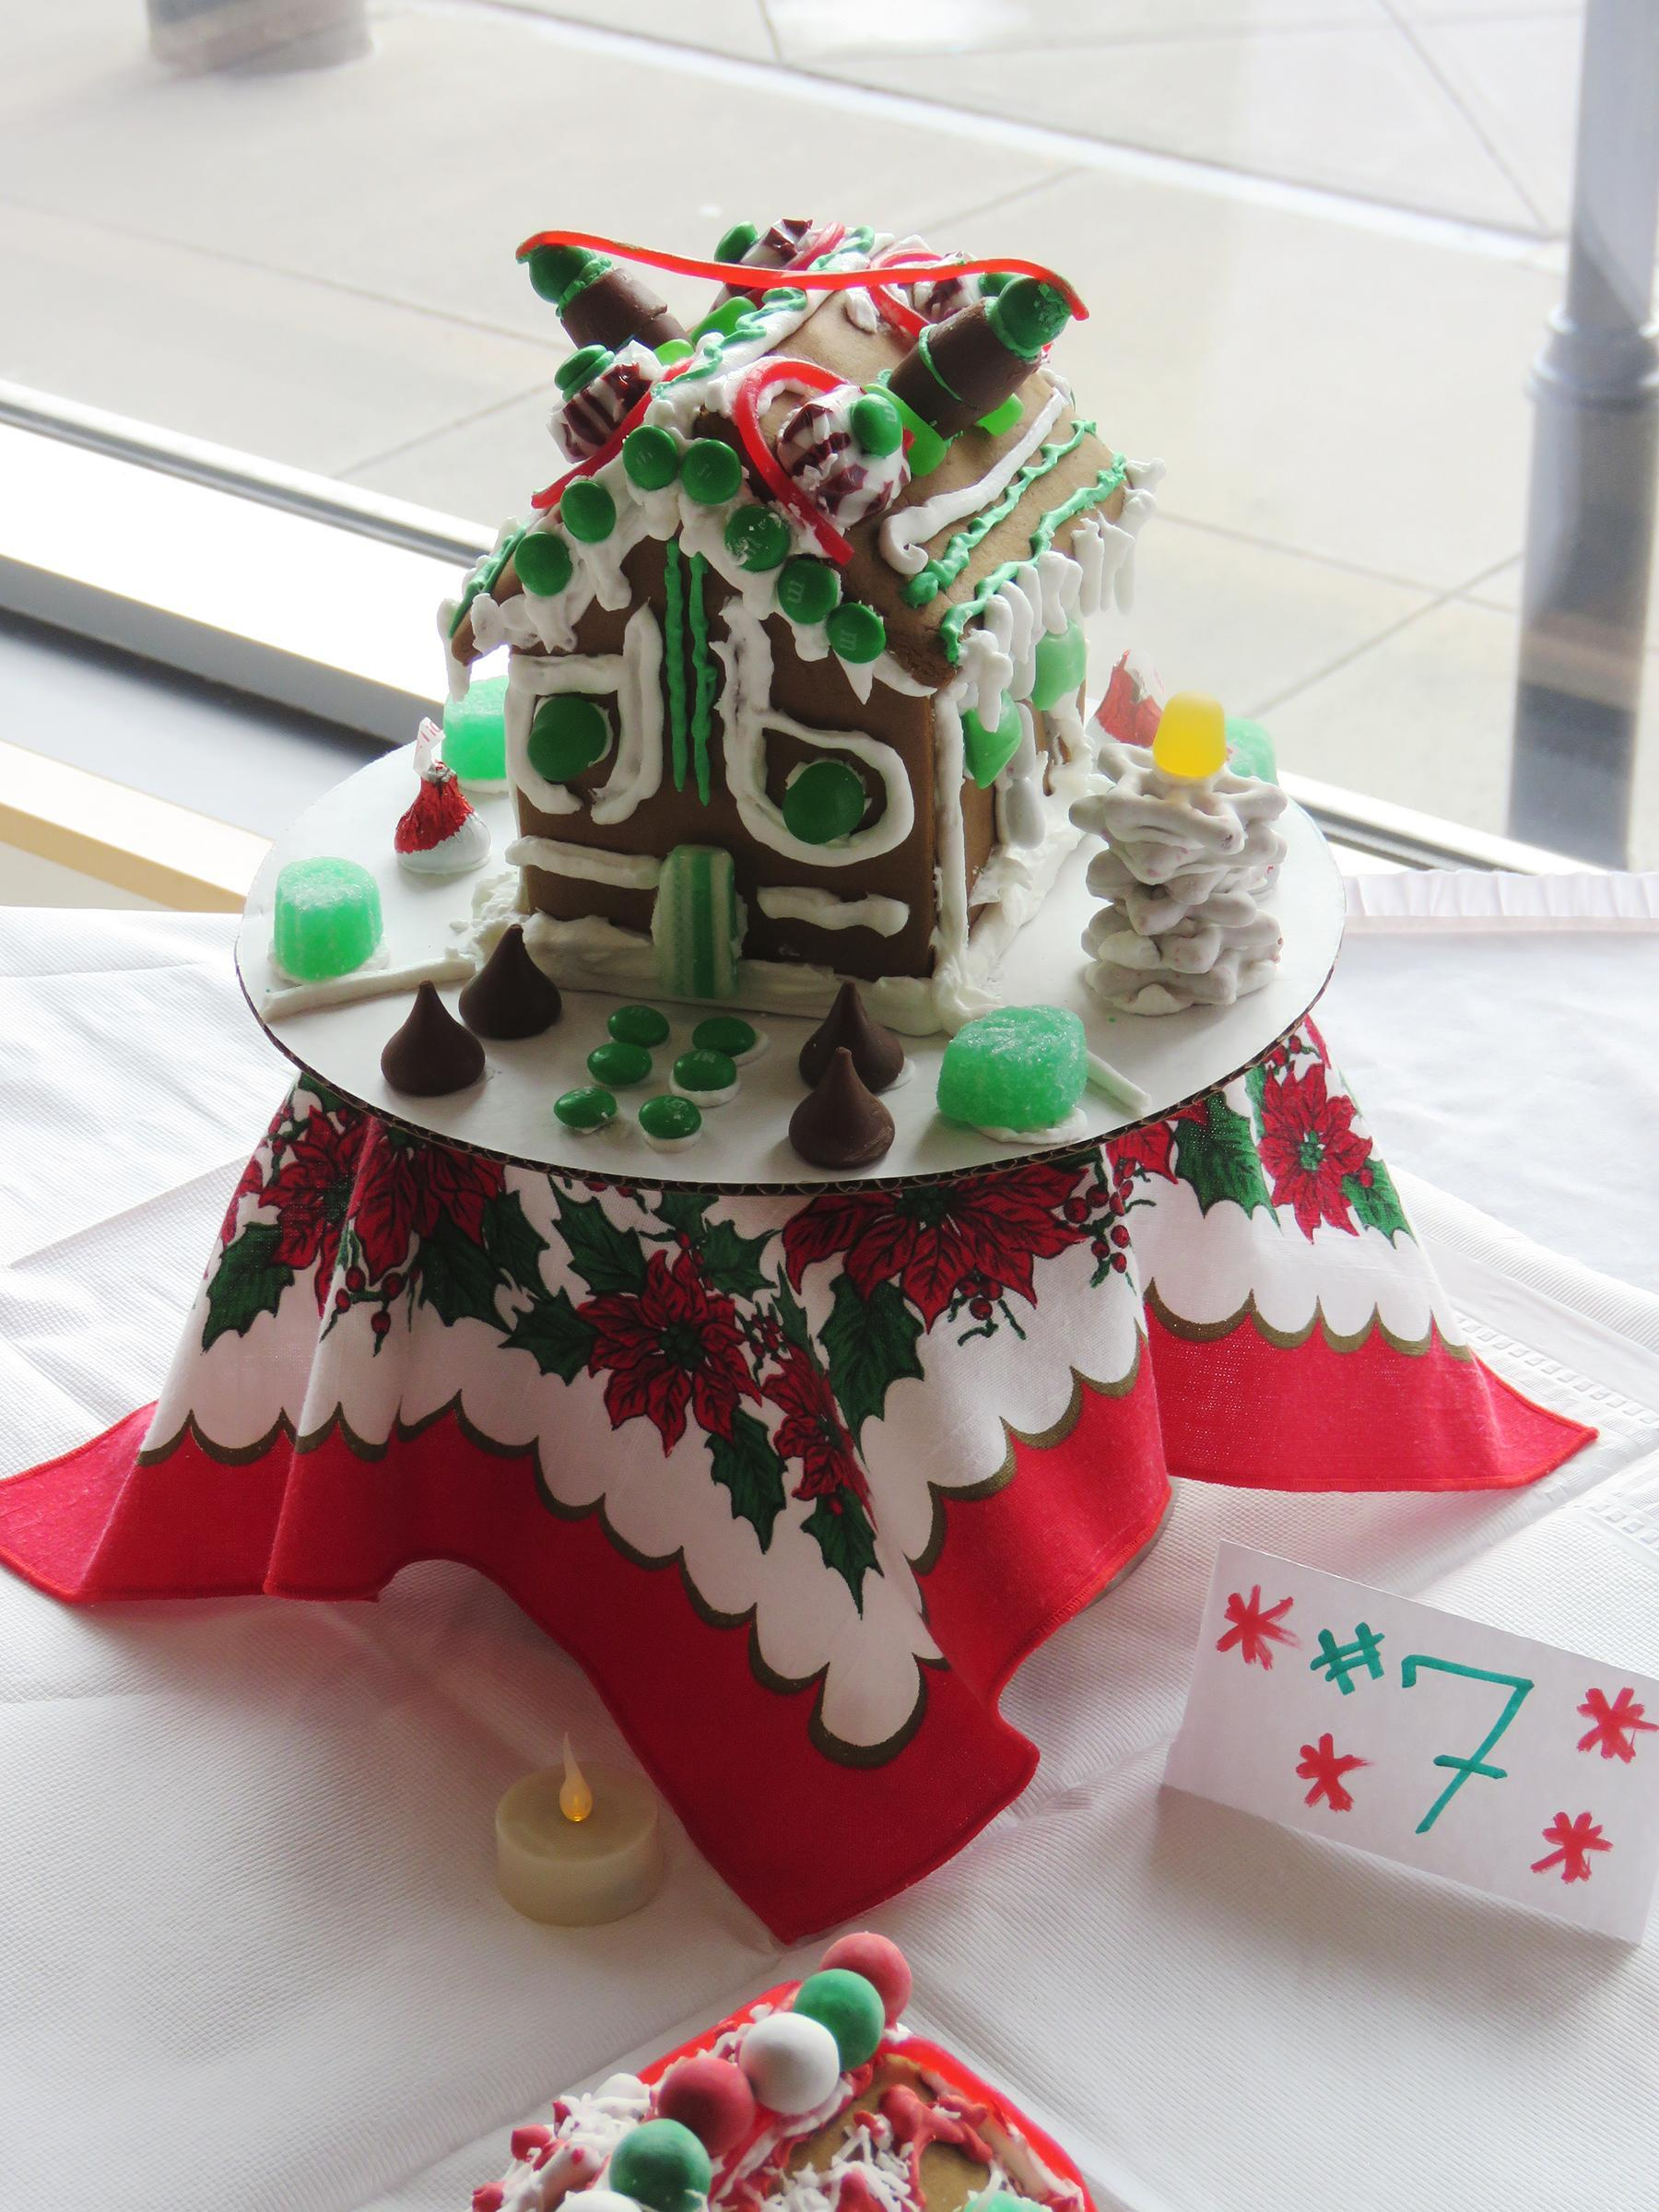 An intricately-decorated gingerbread house on a pedestal